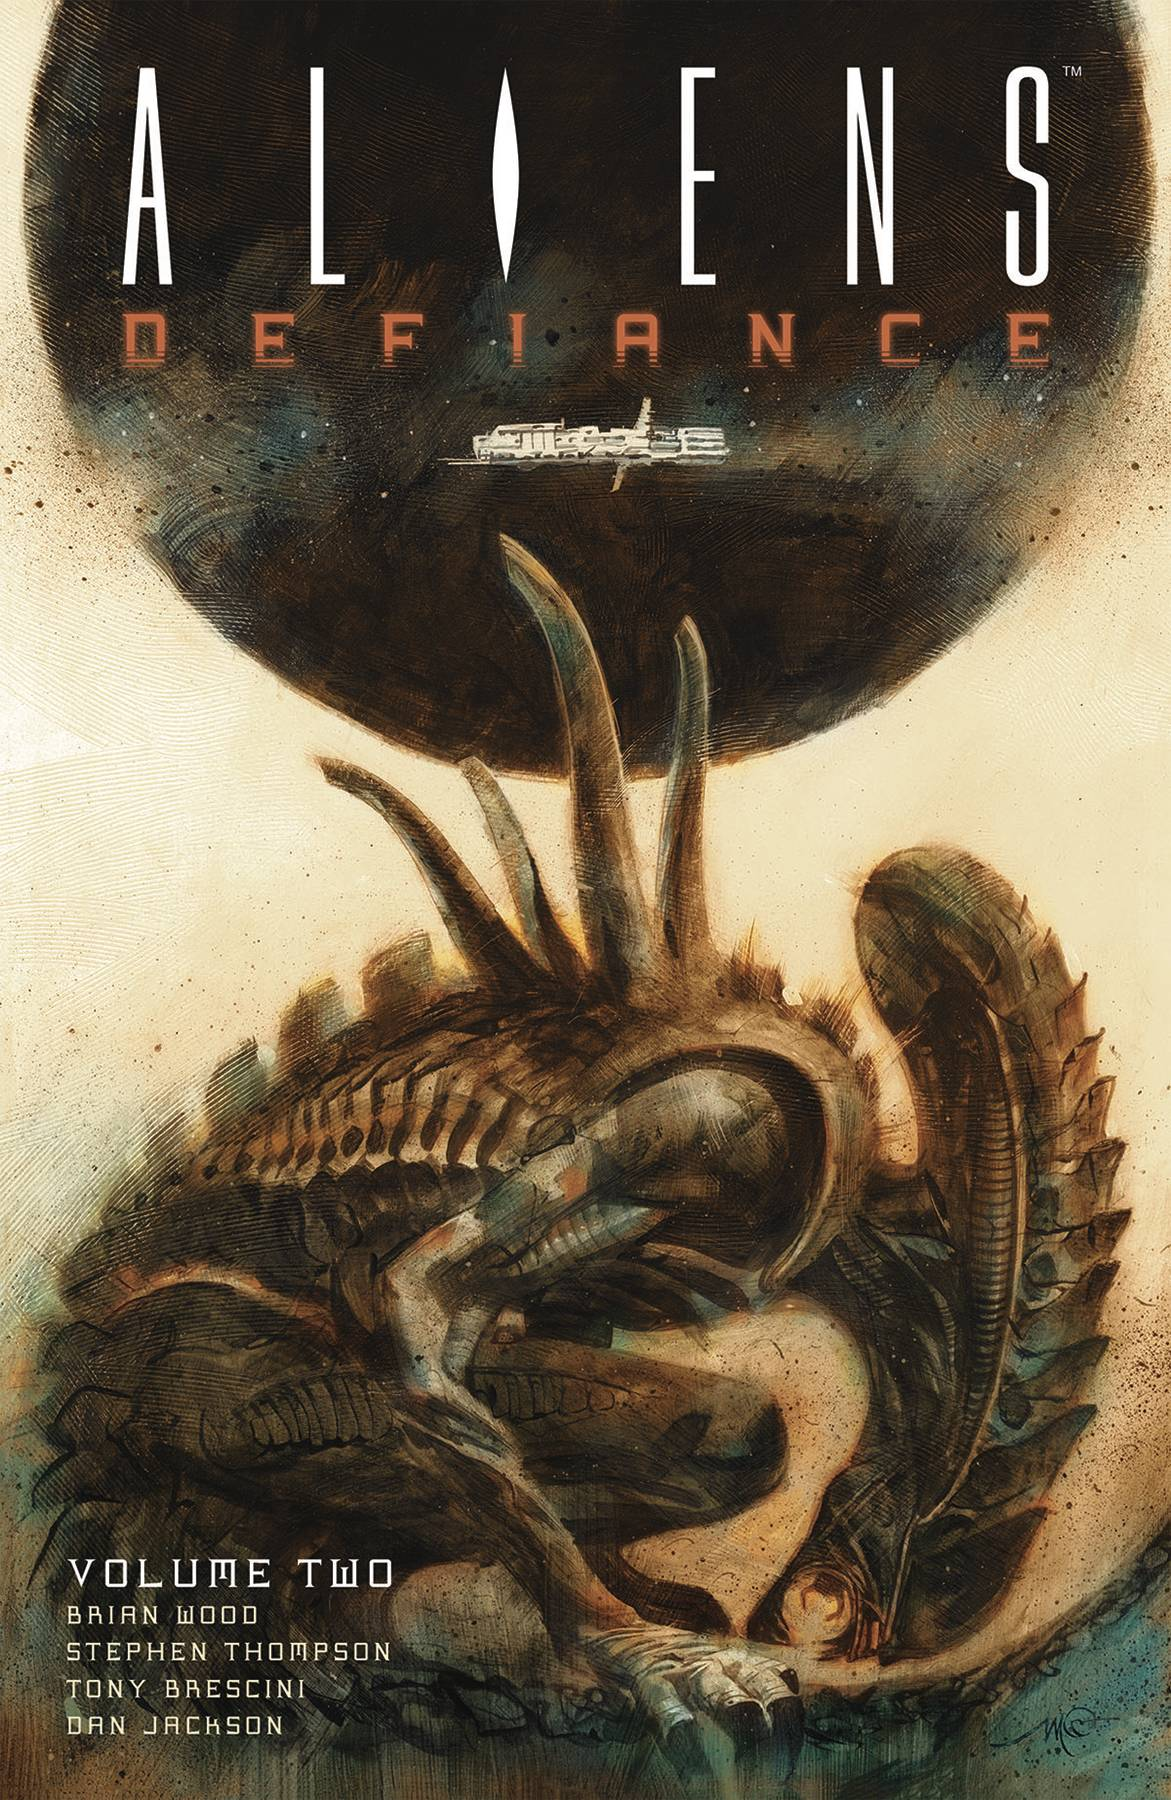 ALIENS: DEFIANCE VOL 02